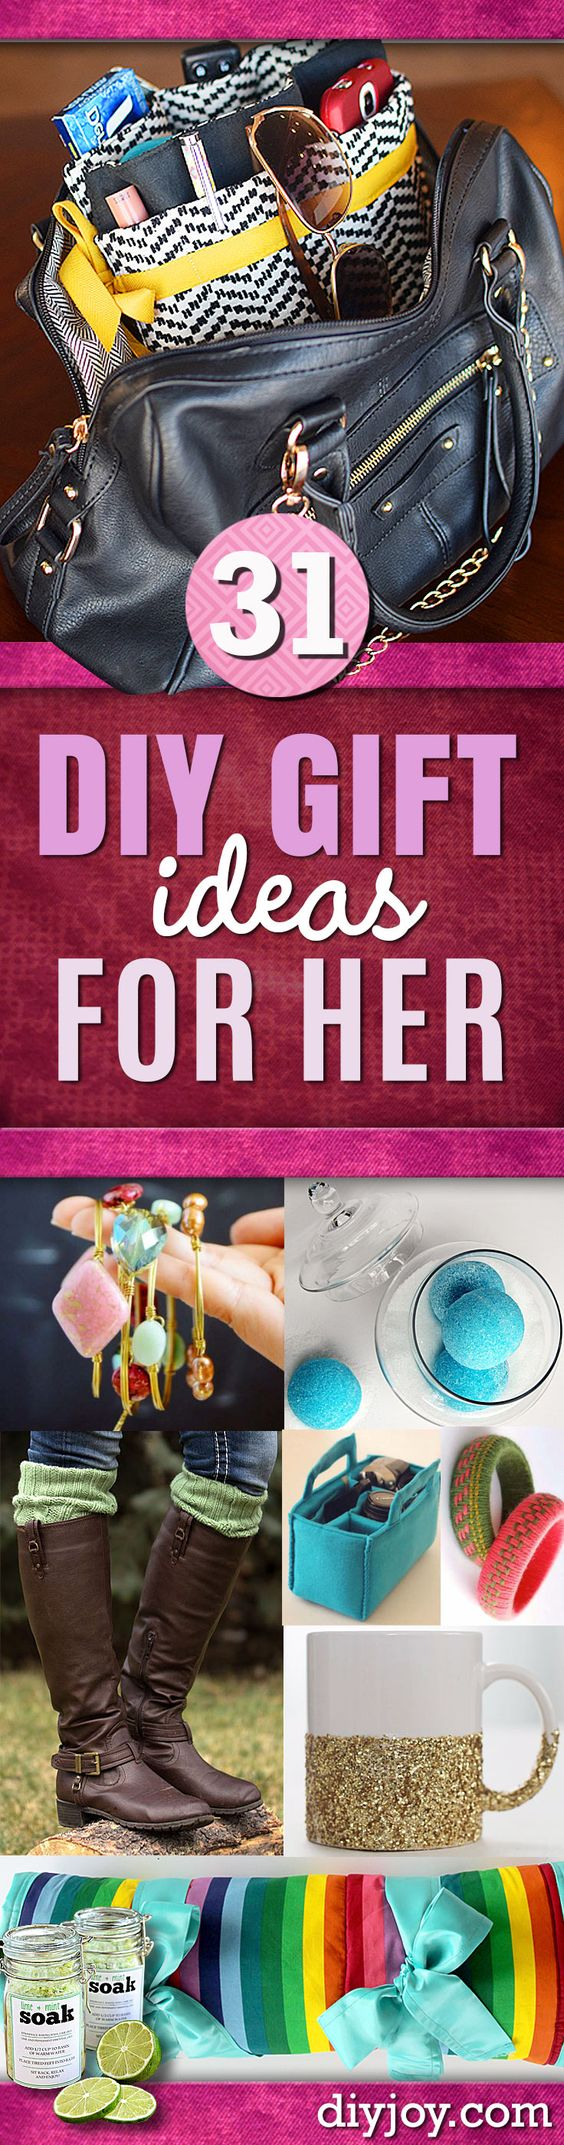 Super special diy gift ideas for her homemade Christmas presents for wife